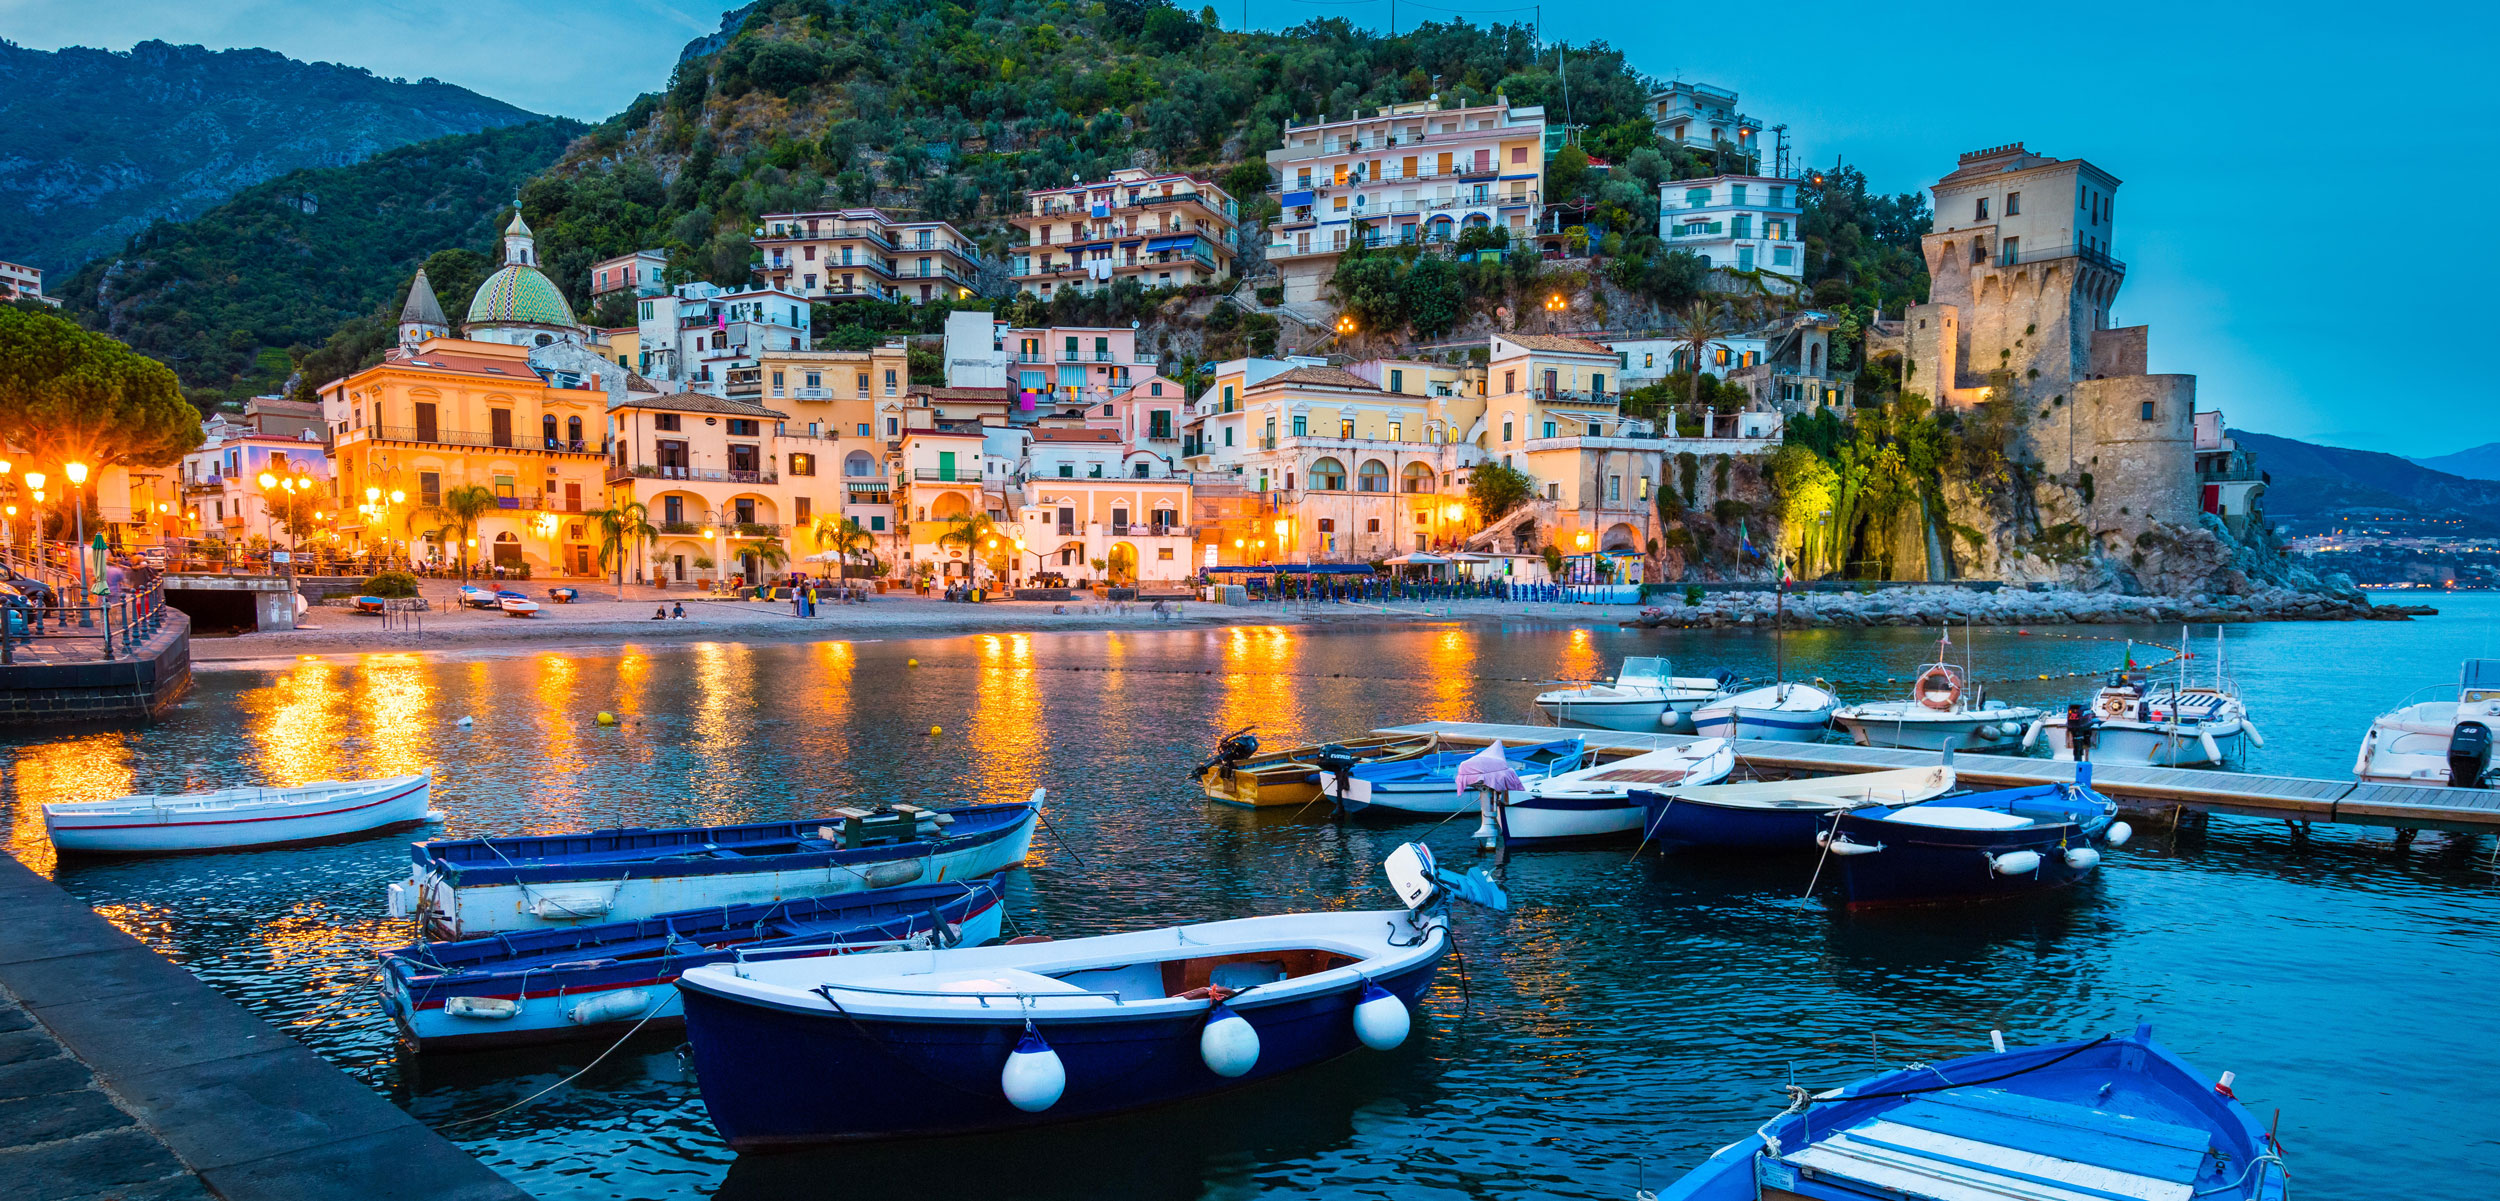 The fishing village of Cetara, Italy